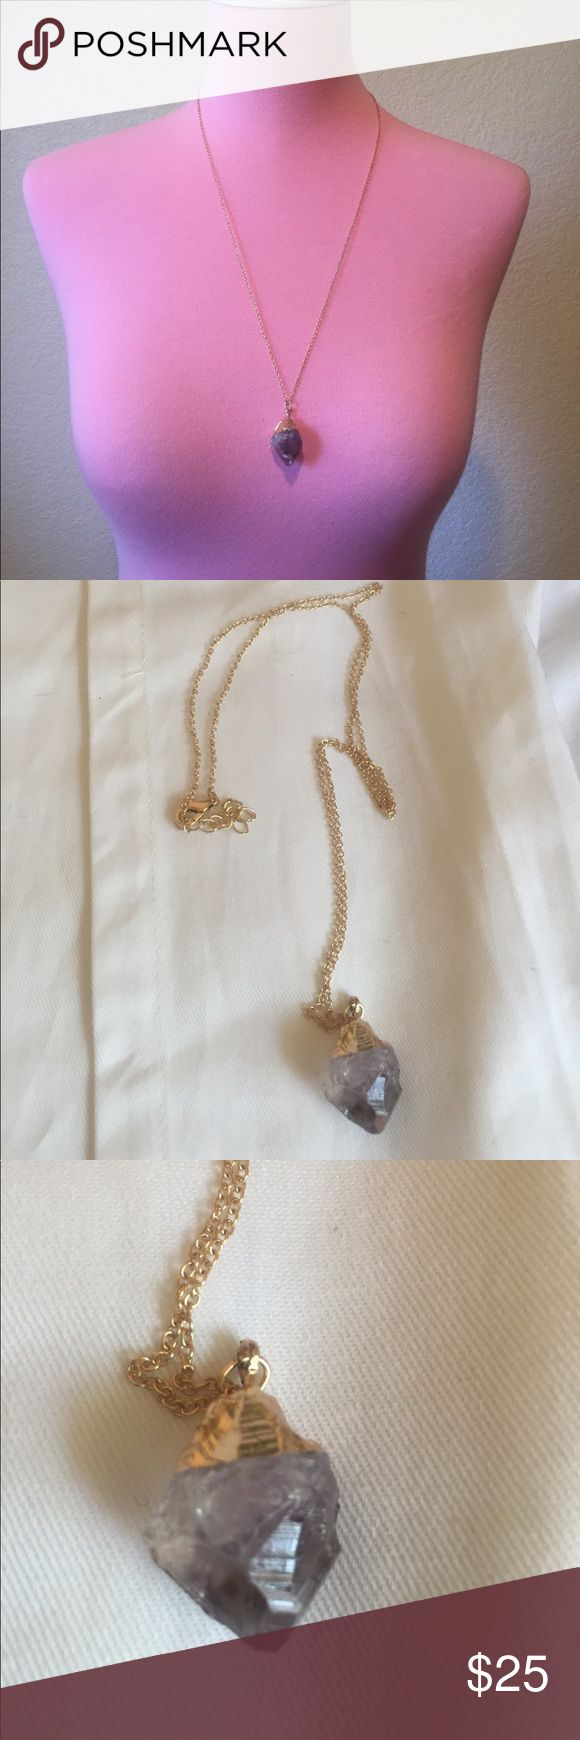 🌟 New list! 🌟 Beautiful purple quartz necklace This necklace goes great with any outfit and is a fun piece of statement jewelry. Jewelry Necklaces